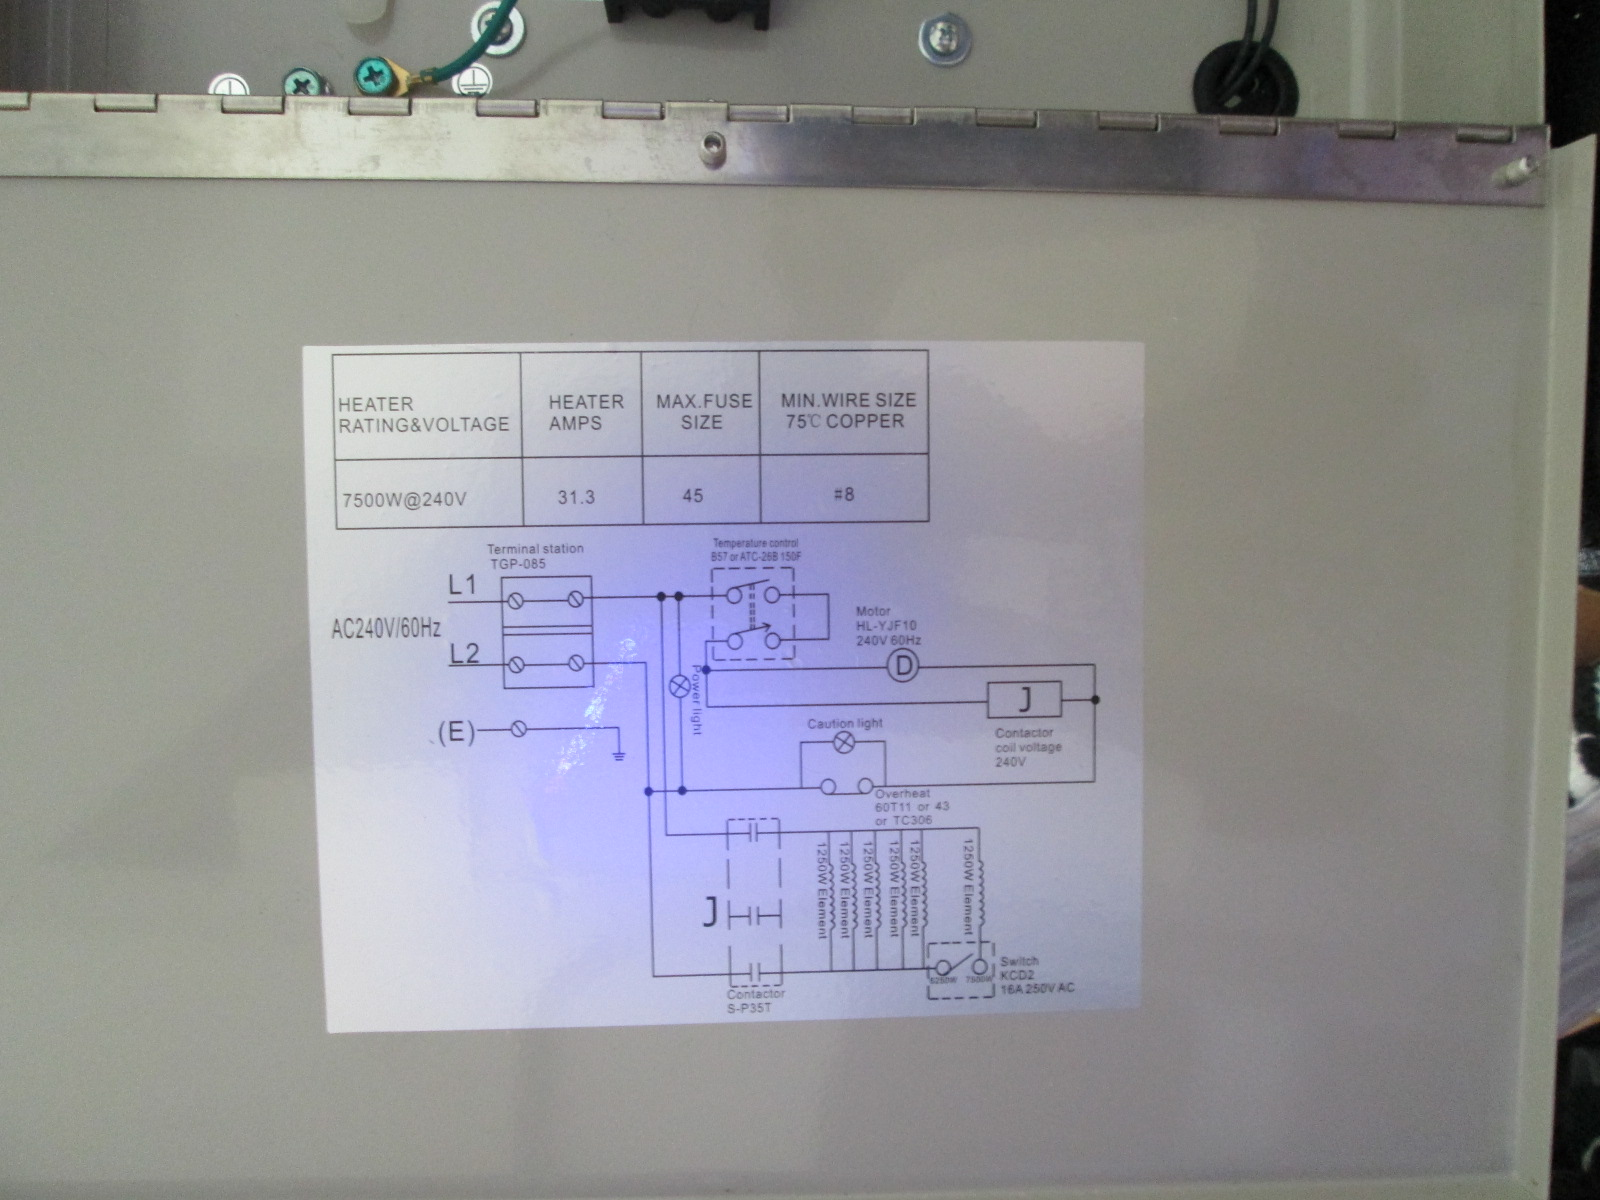 Radiant Heater Wiring - Wiring Diagram M6 on